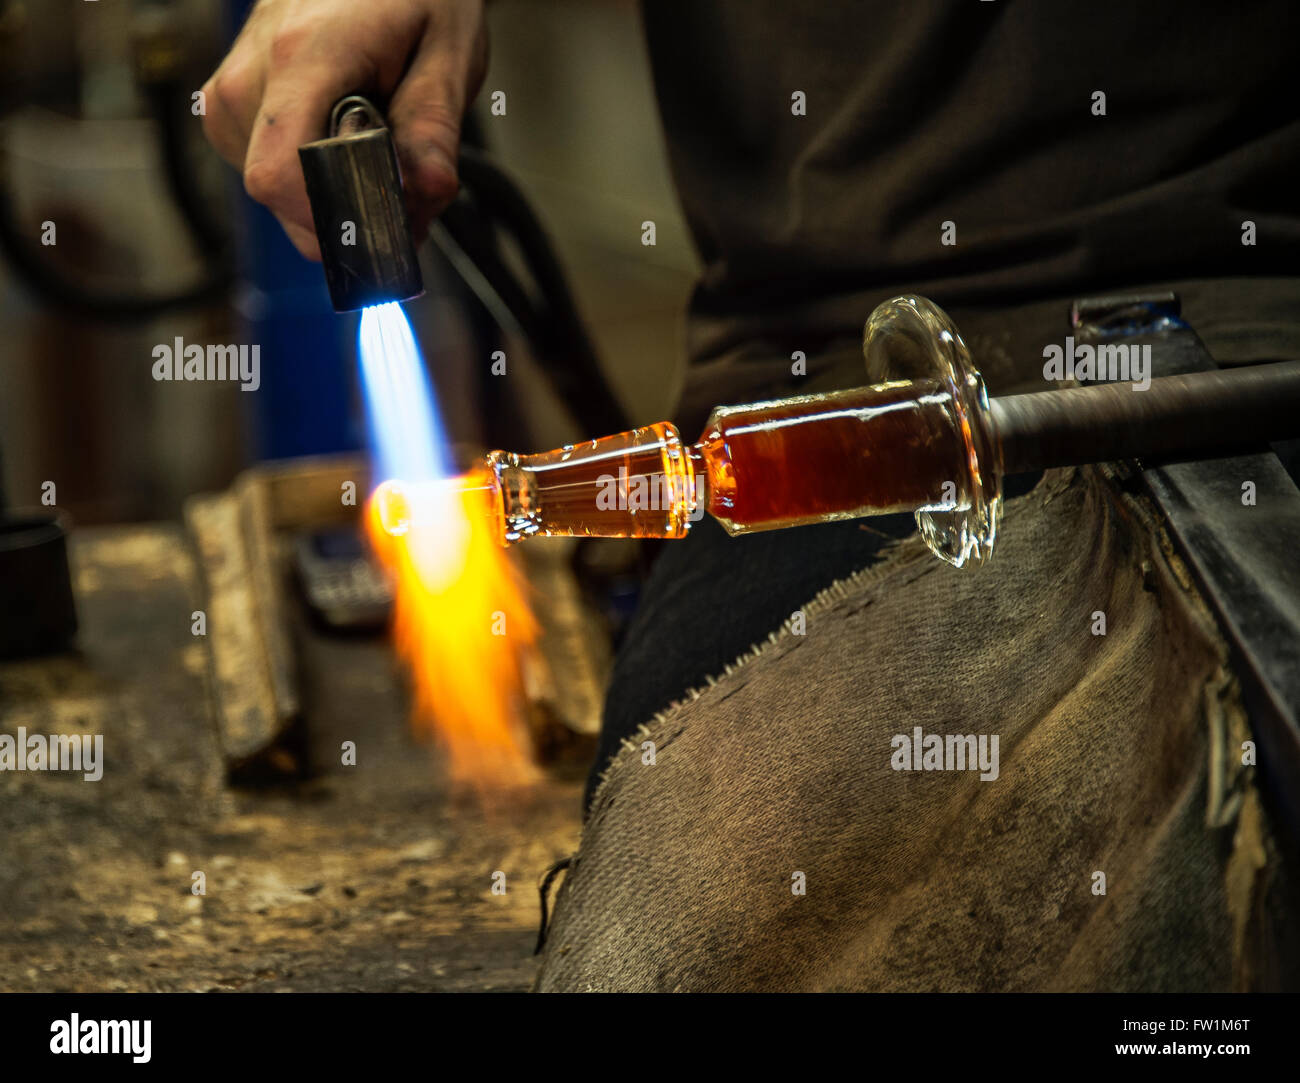 Glass artisan uses a hand torch to soften the piece he is working on. - Stock Image